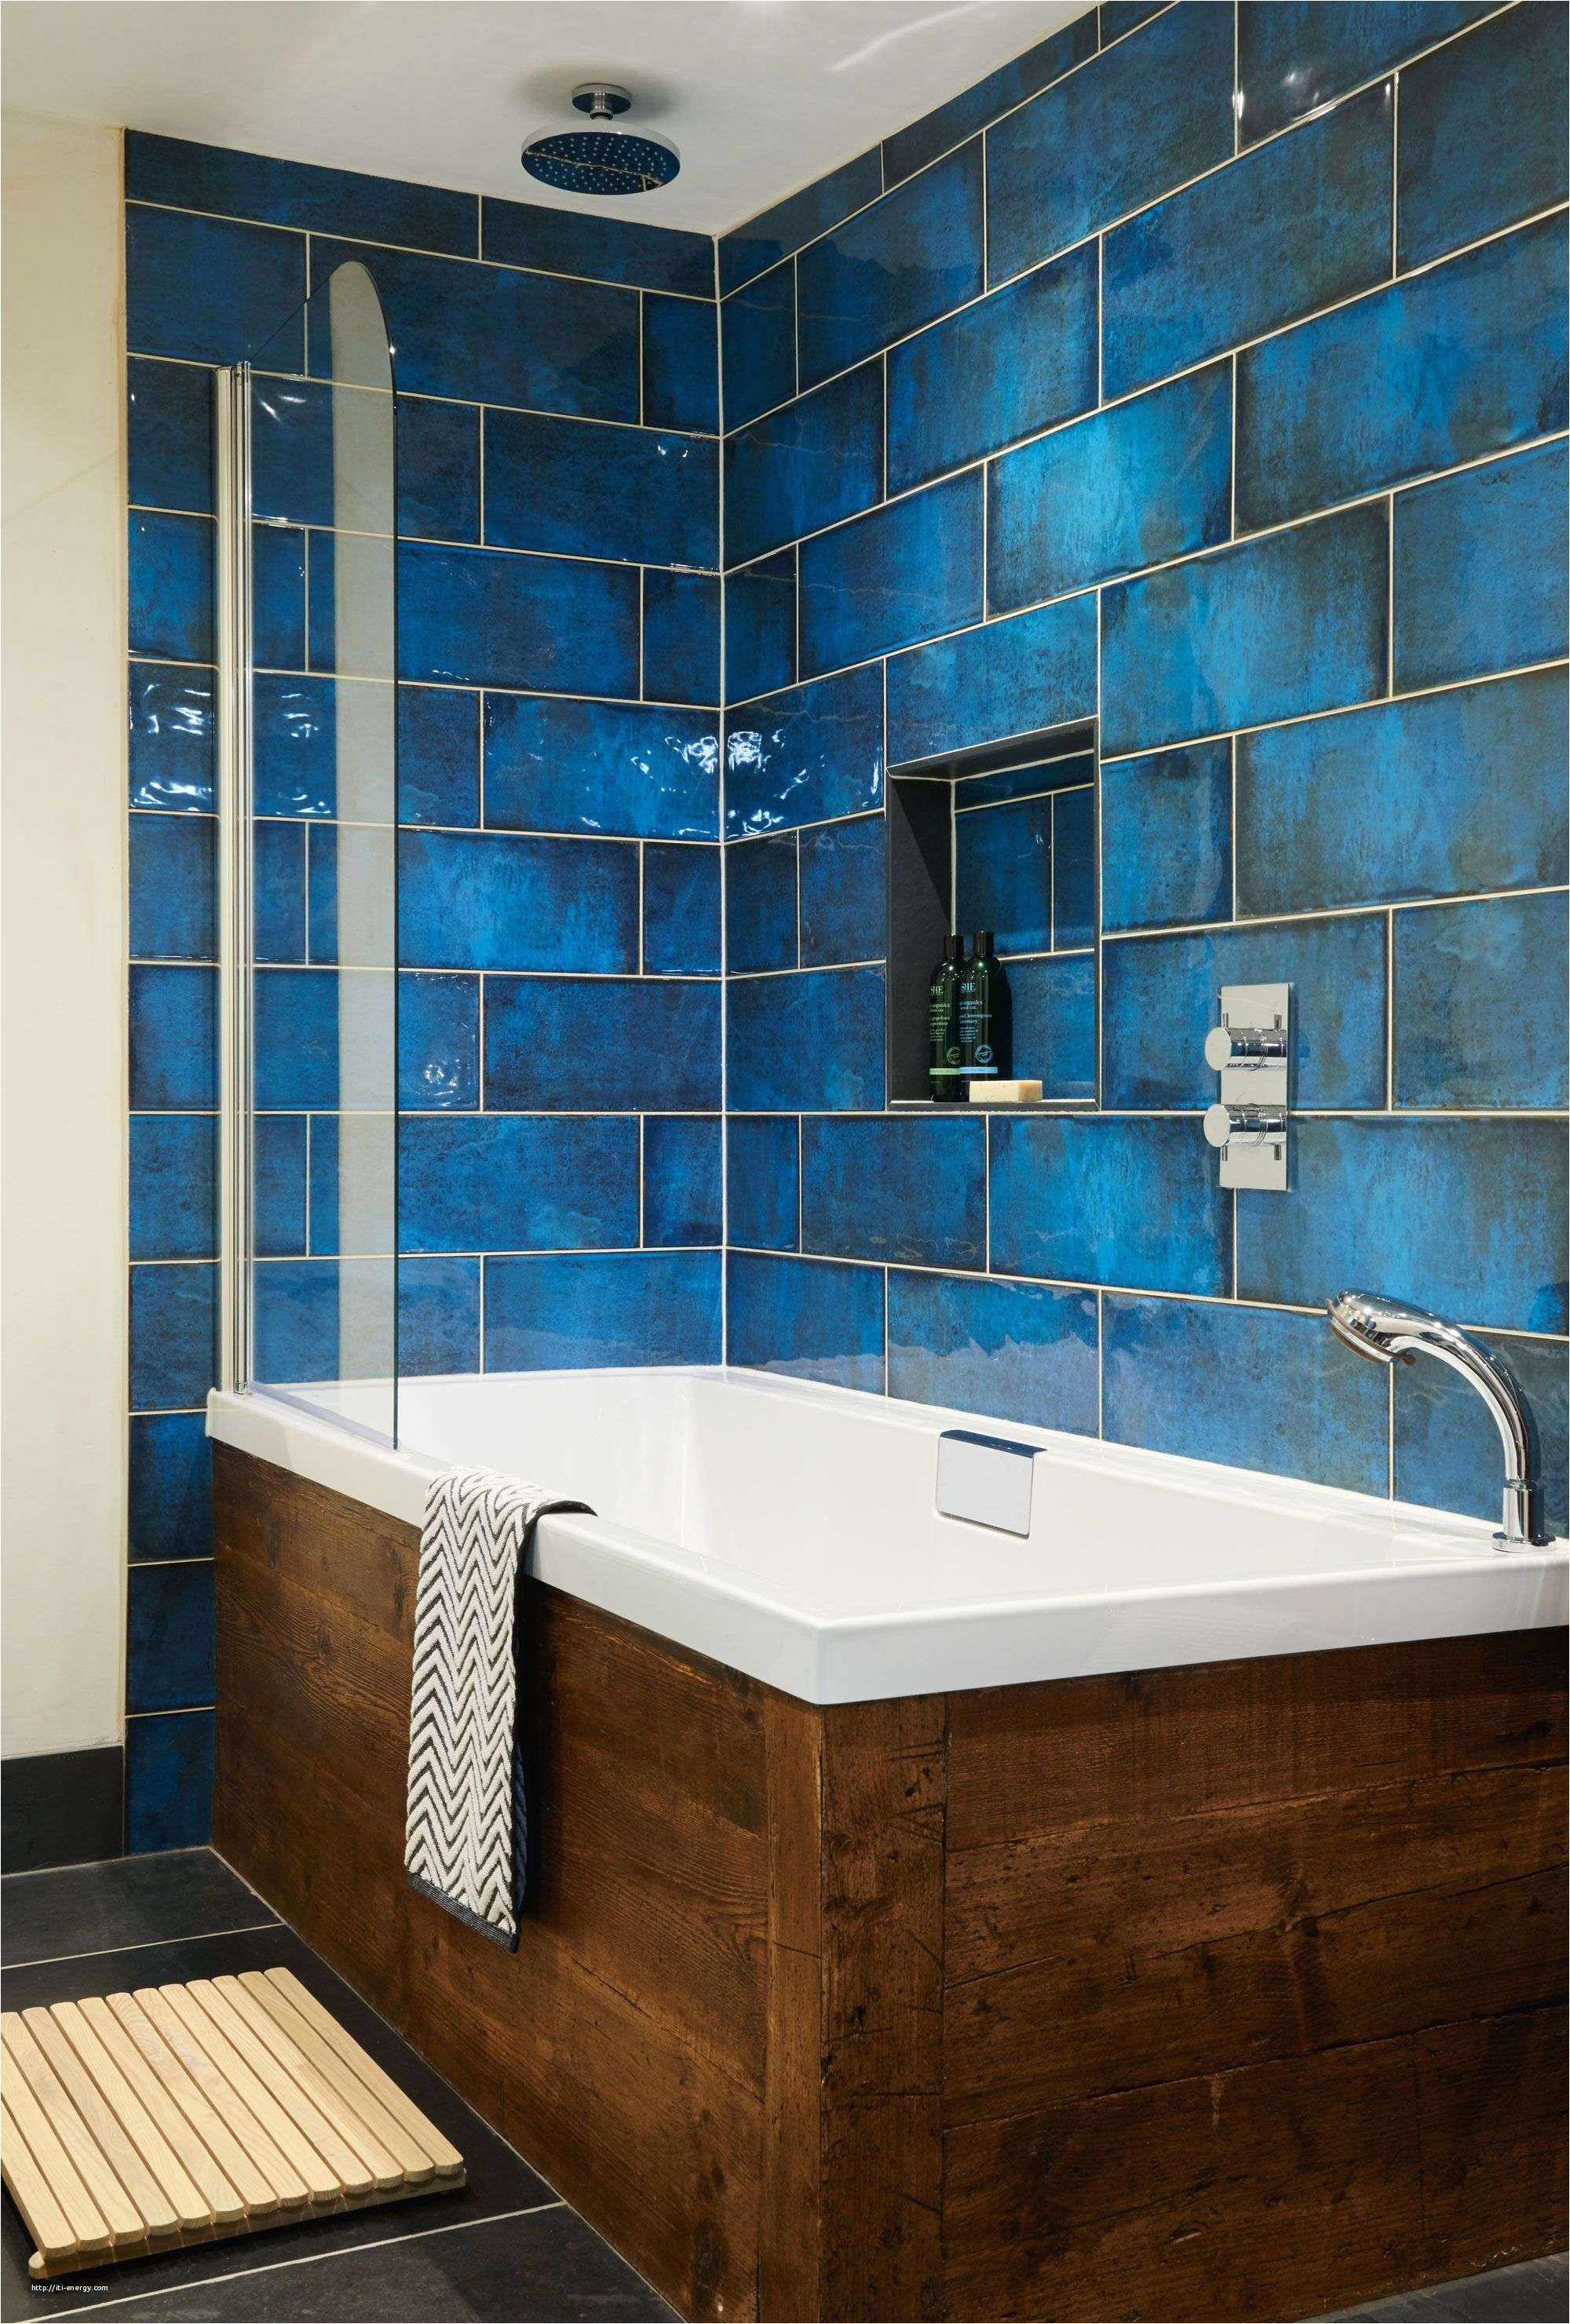 Nice Bathroom Designs For Small Spaces Inspirational Awesome Bathroom Picture Ideas Lovely Tag Toilet Ideas 0d Best